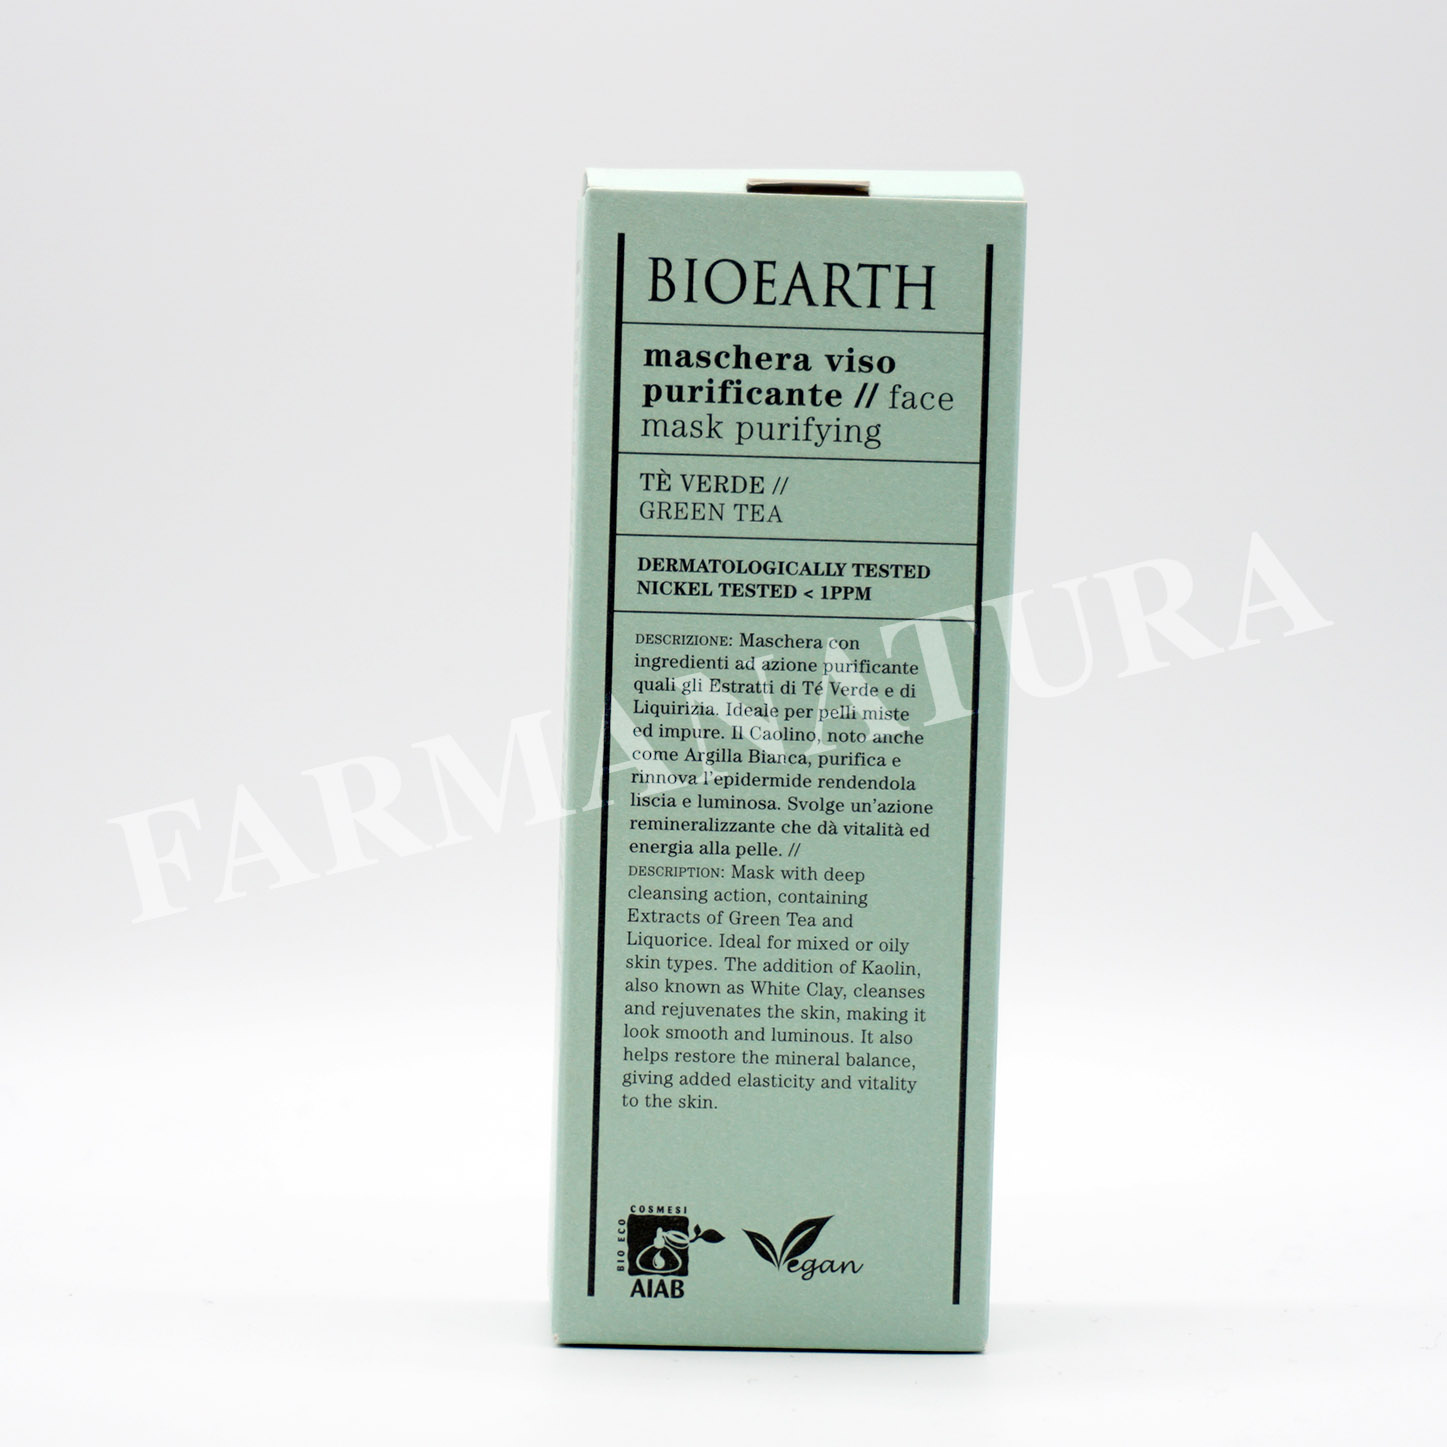 Bioearth Maschera Purificante 100 Ml